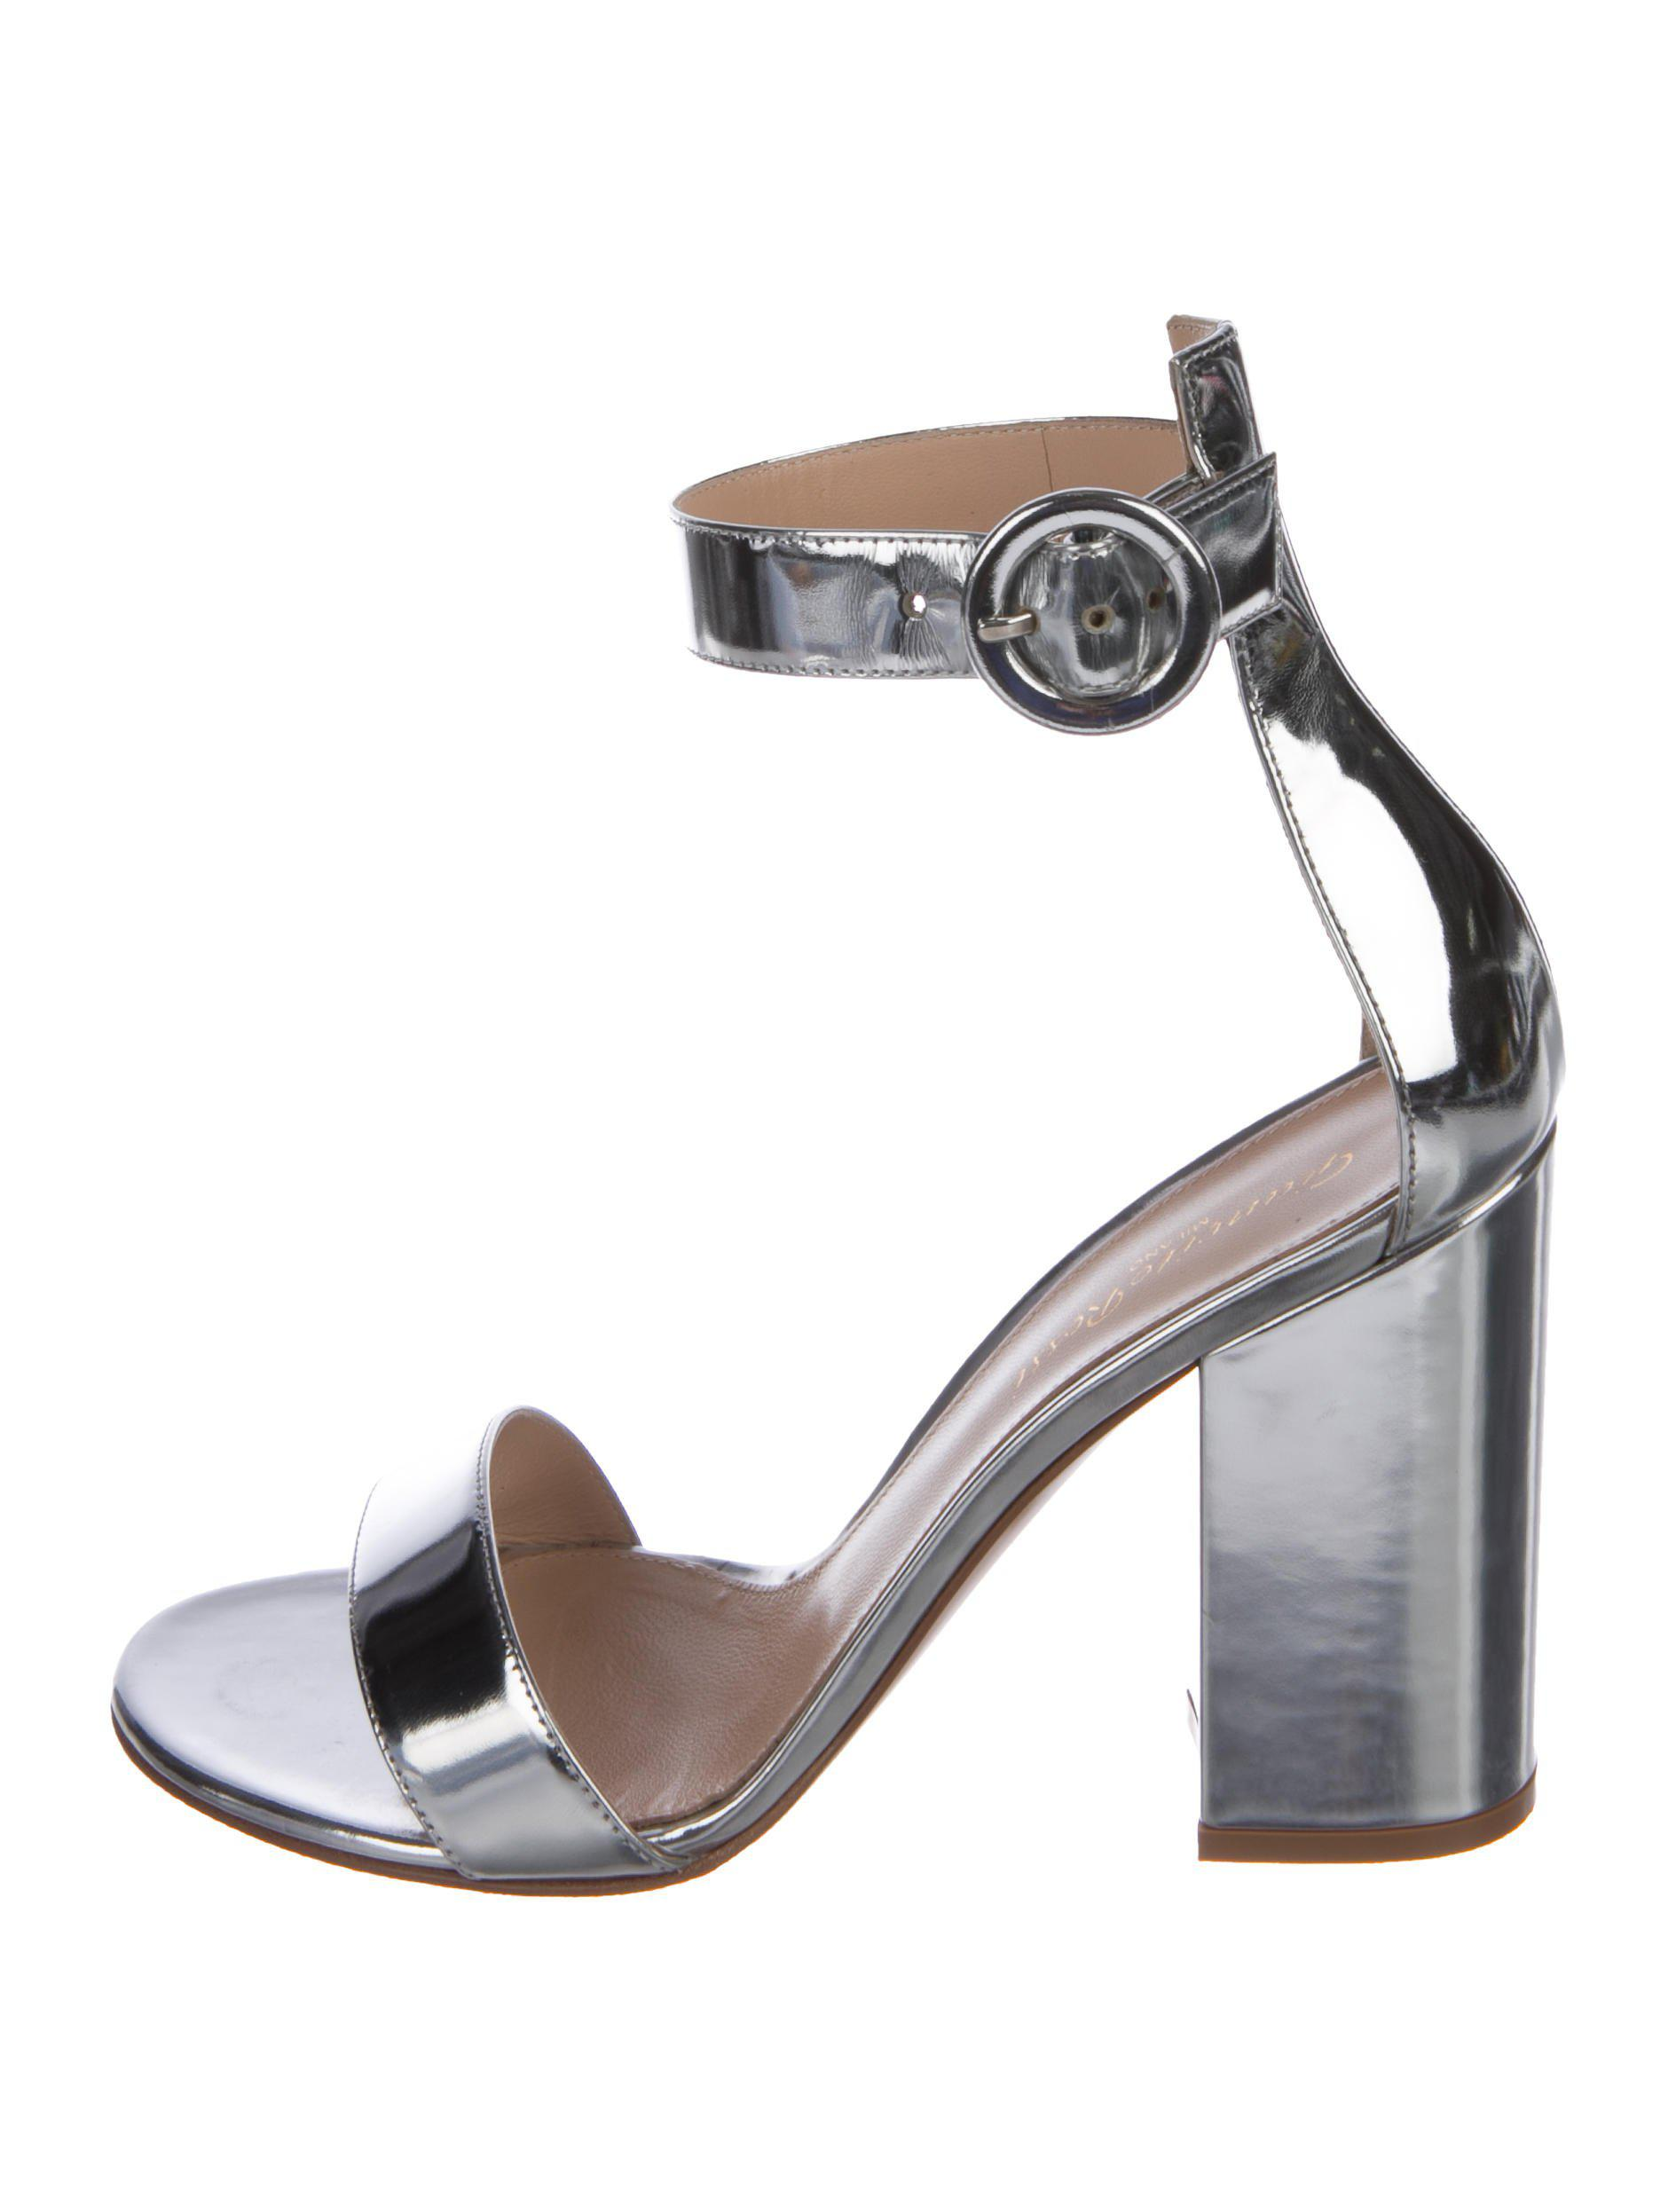 248996975 Lyst - Gianvito Rossi Ankle Strap Sandals Silver in Metallic